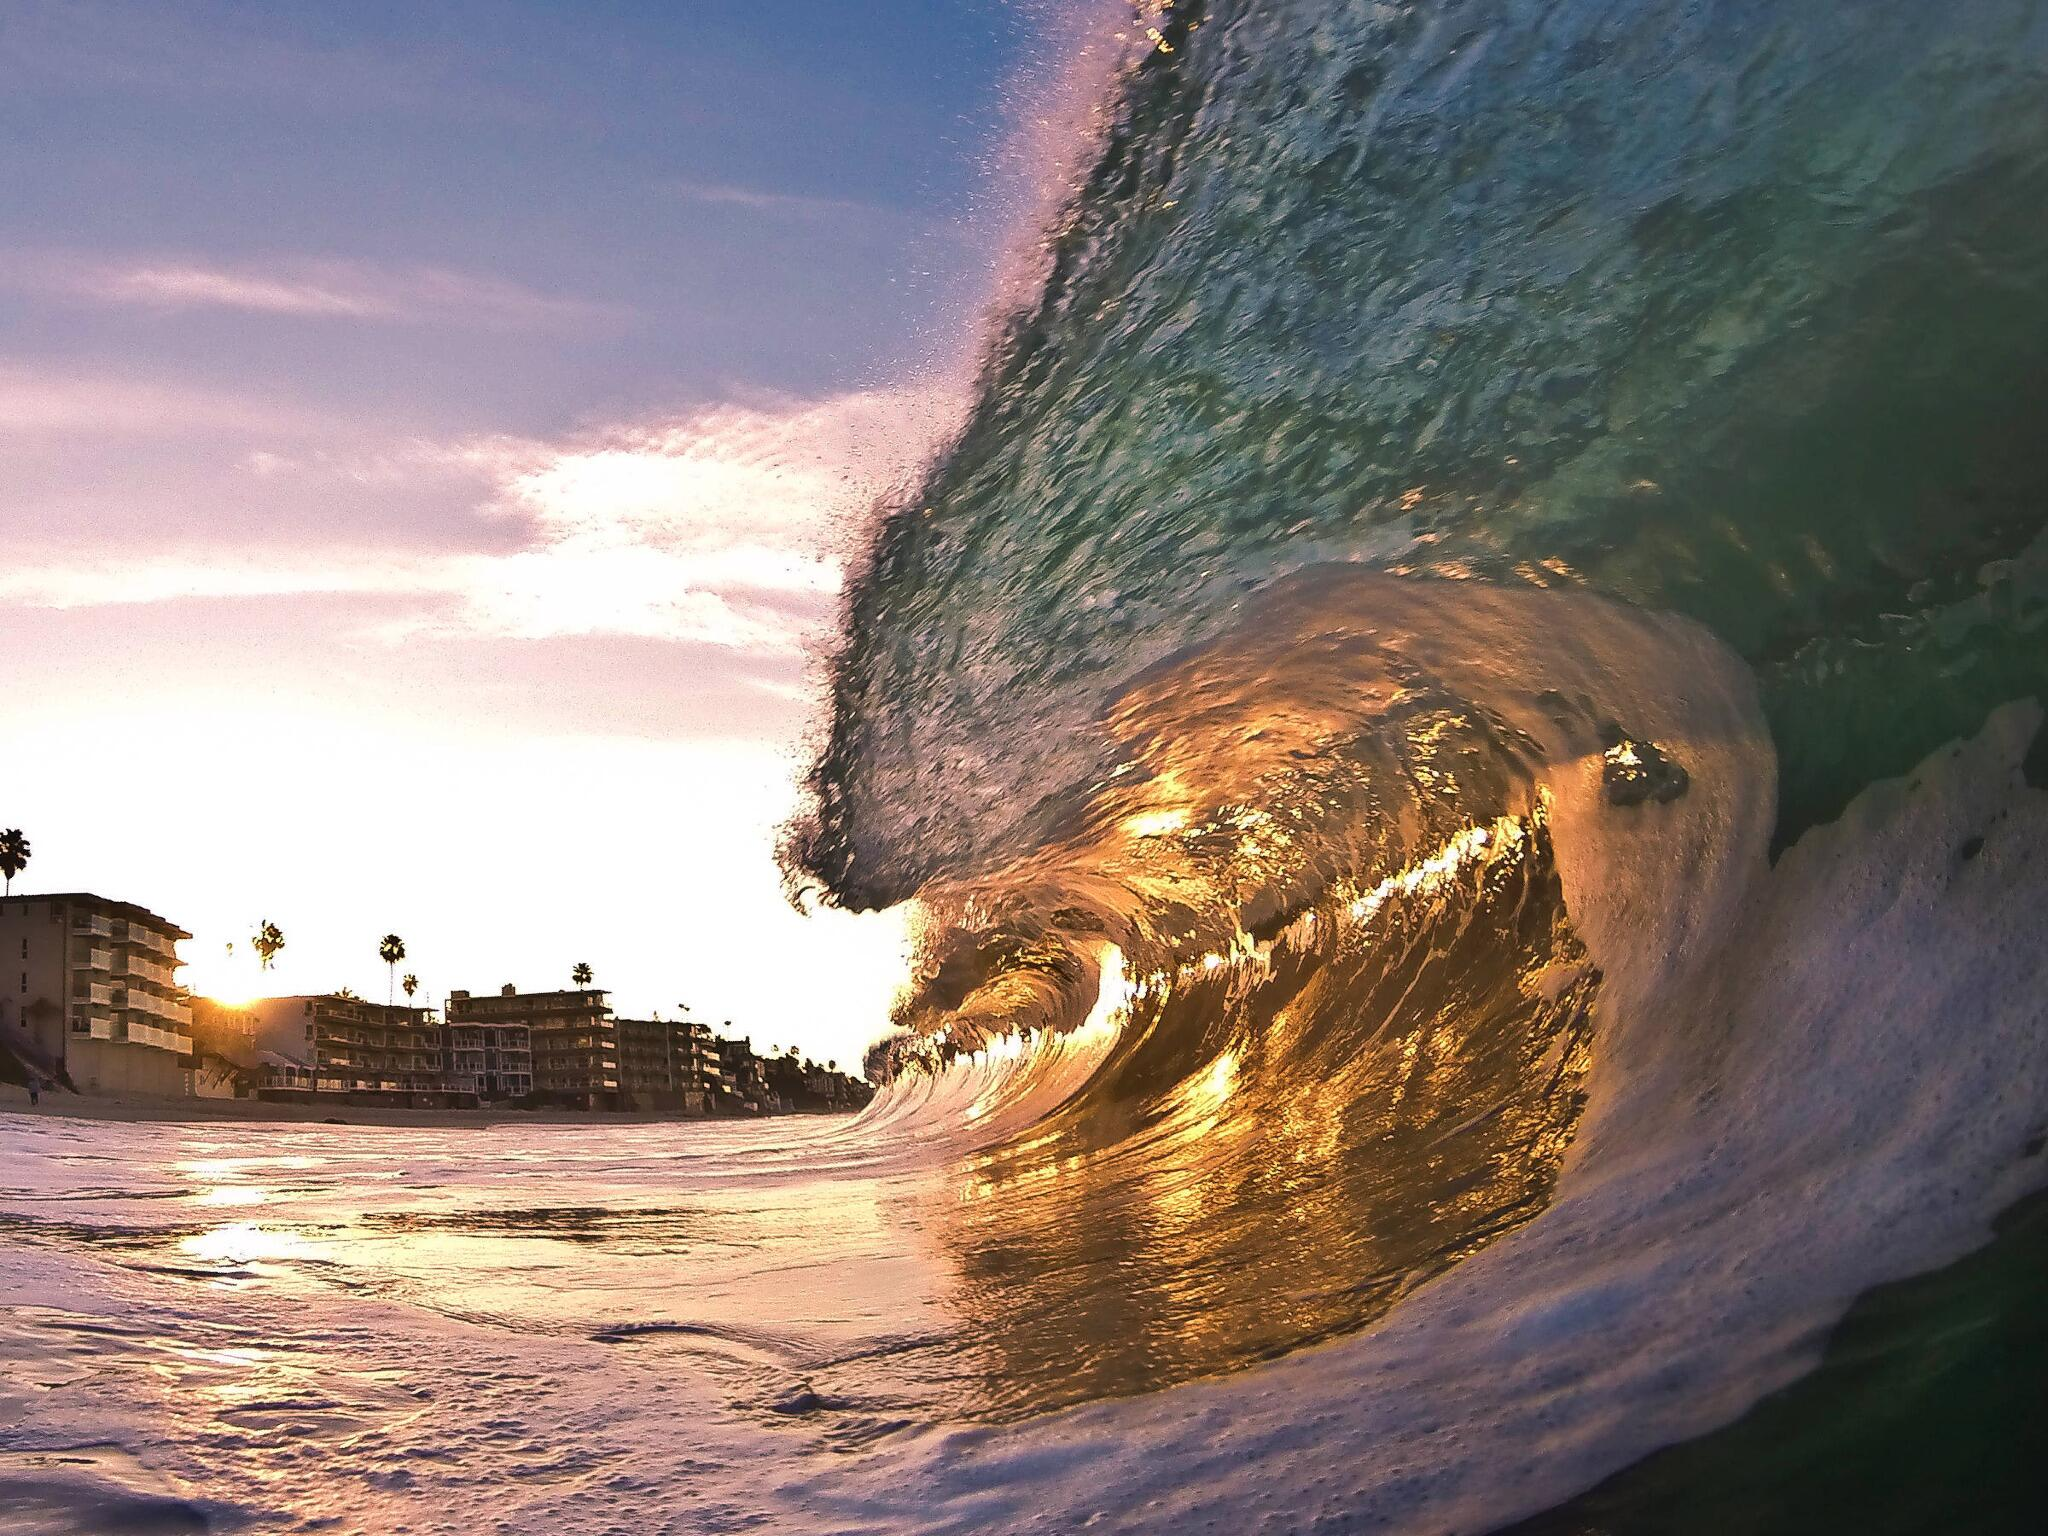 This sunrise barrel was captured by @smitherspix. http://t.co/ZDfTBiIitu